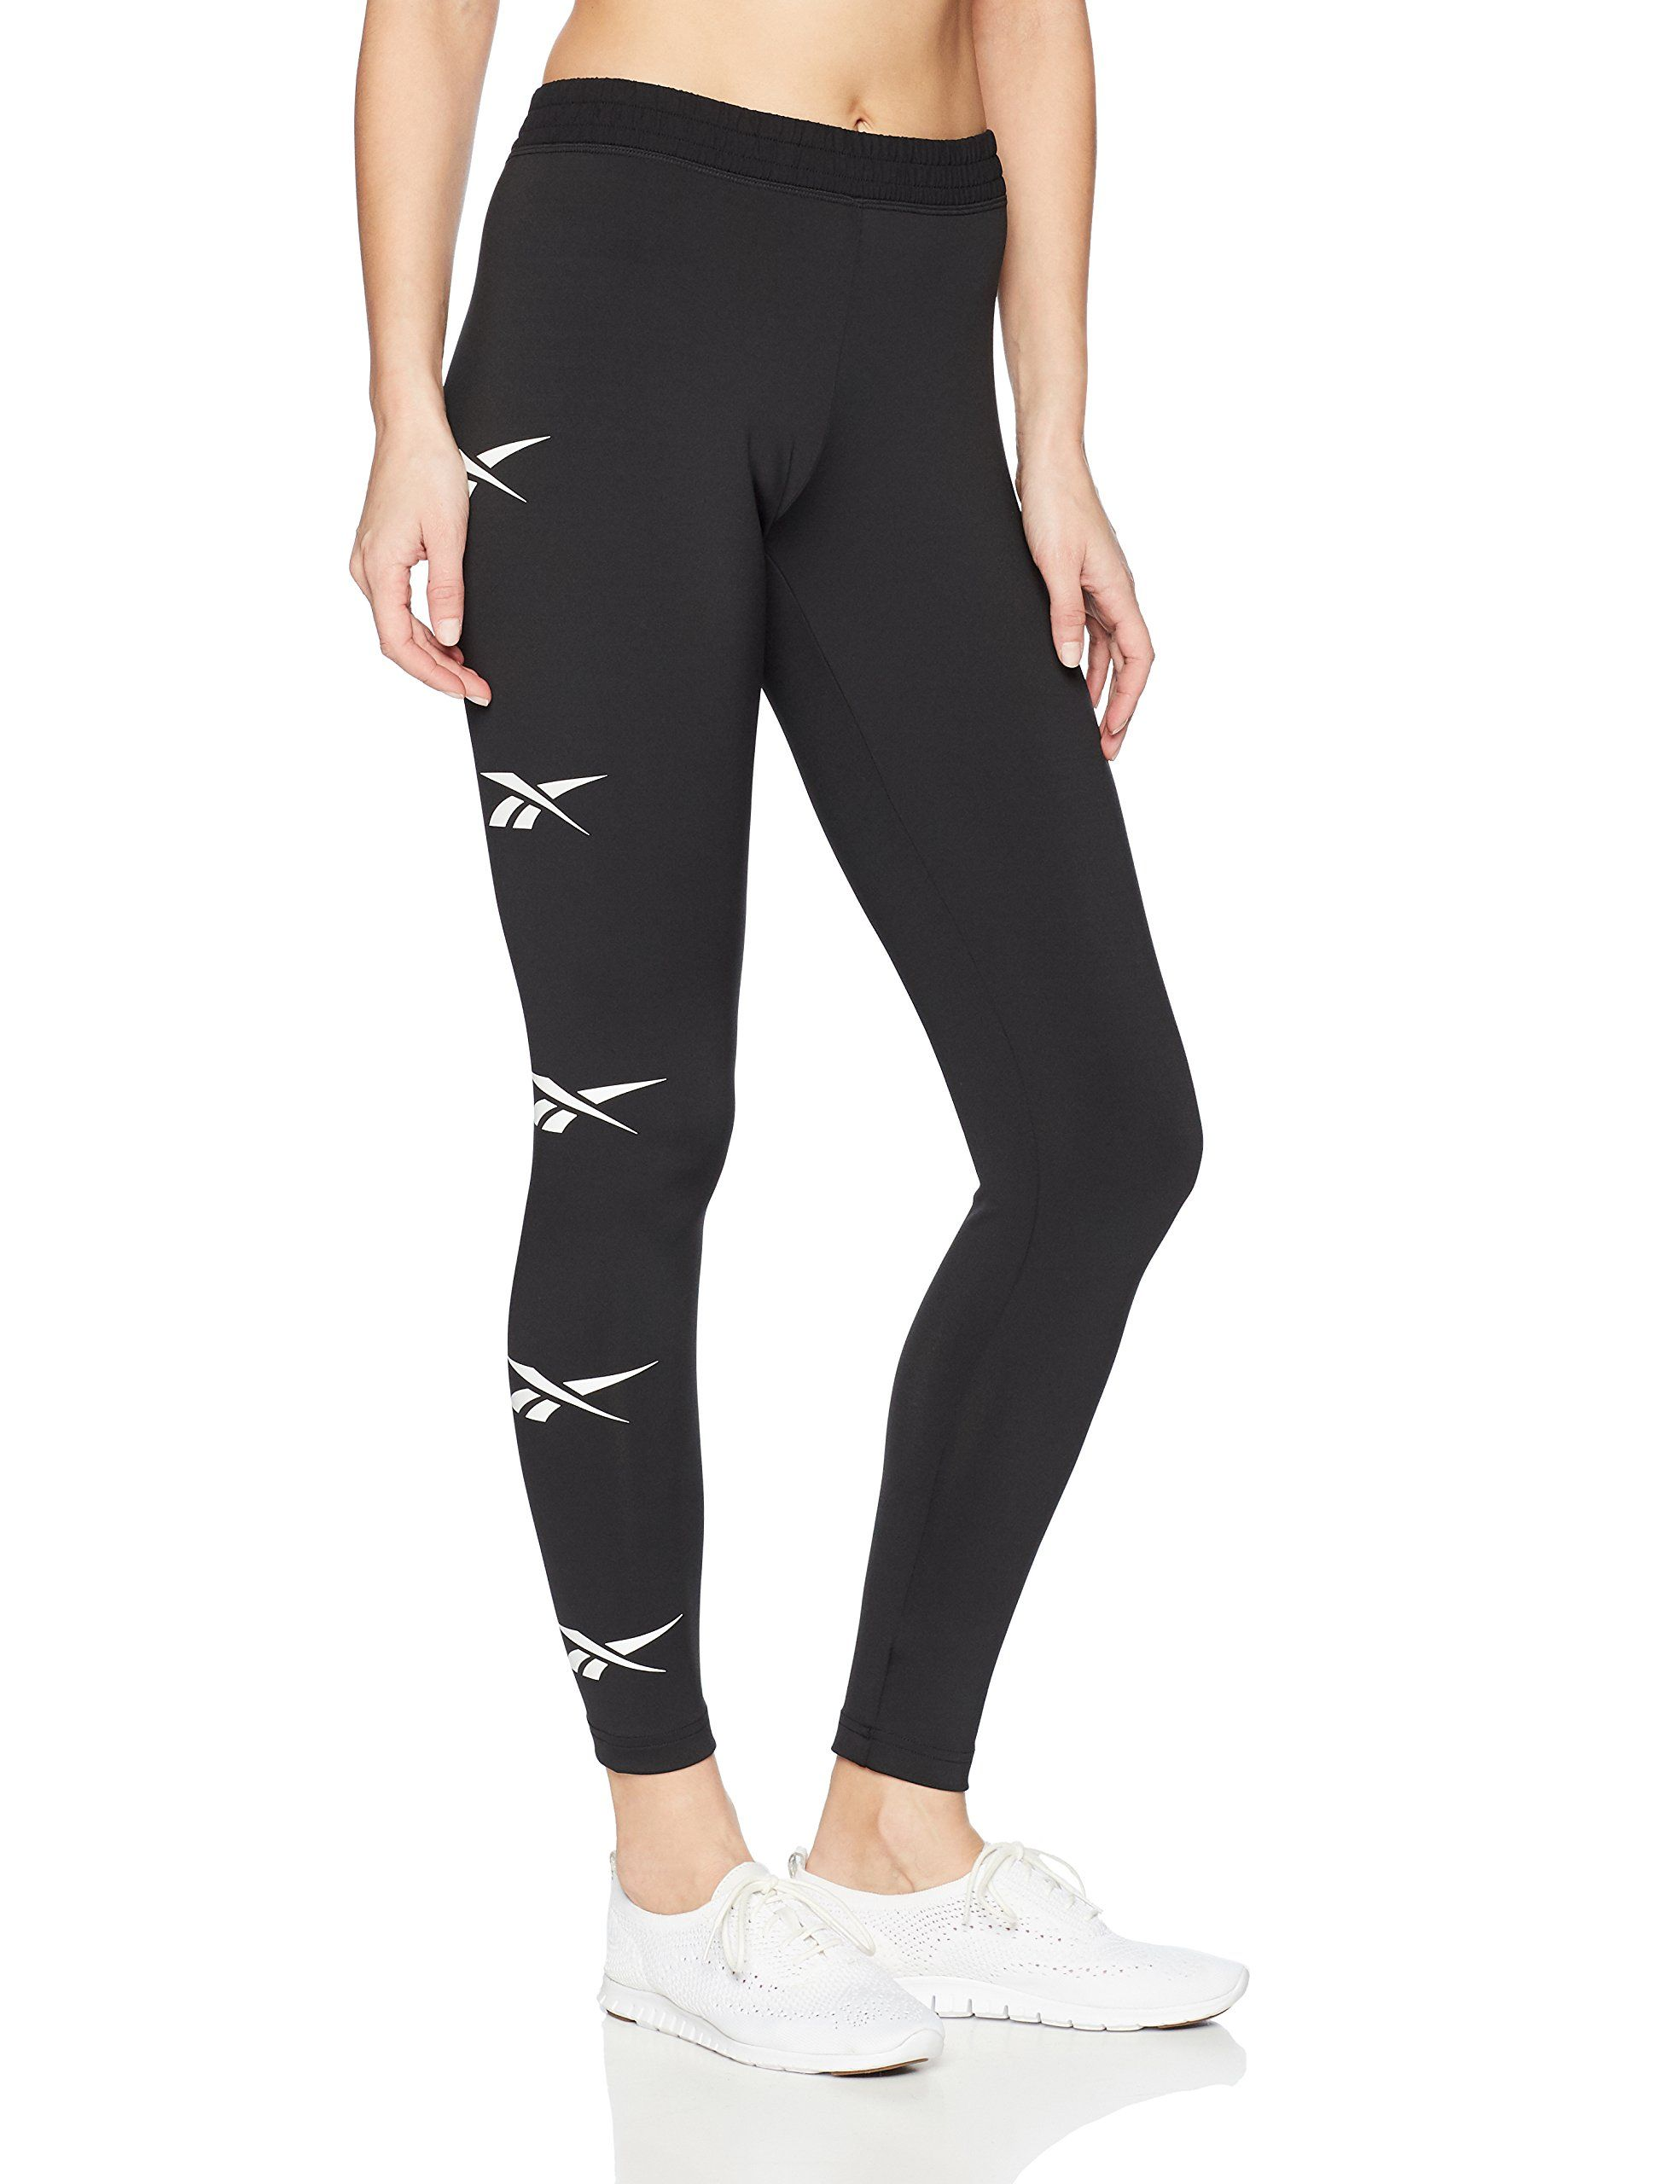 f85132bbf5f4e Reebok Womens Printed Capri Leggings With MidRise Waist Performance  Compression Tights Charcoal Heather Large ** Check this awesome …